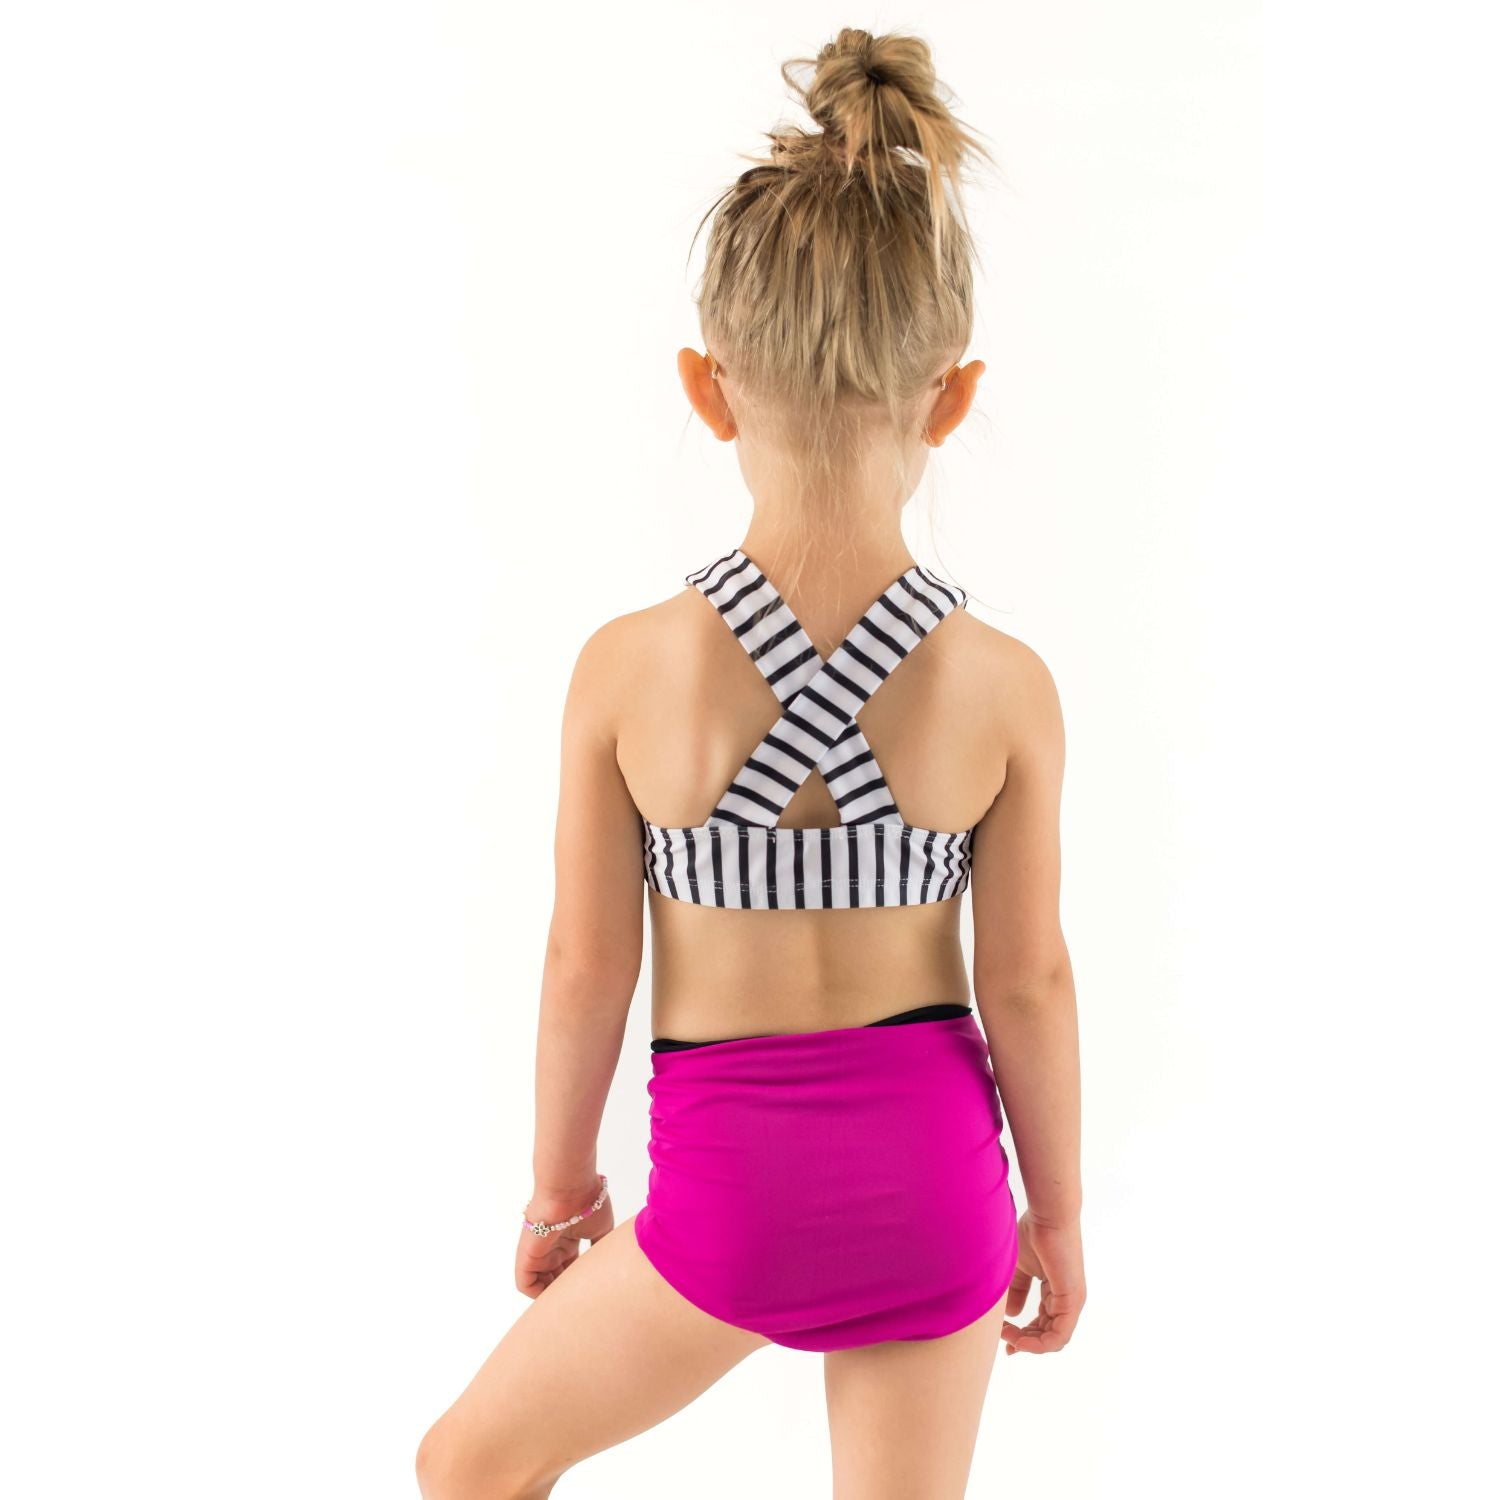 Adele Criss Cross Halter Swim Top - Stripes